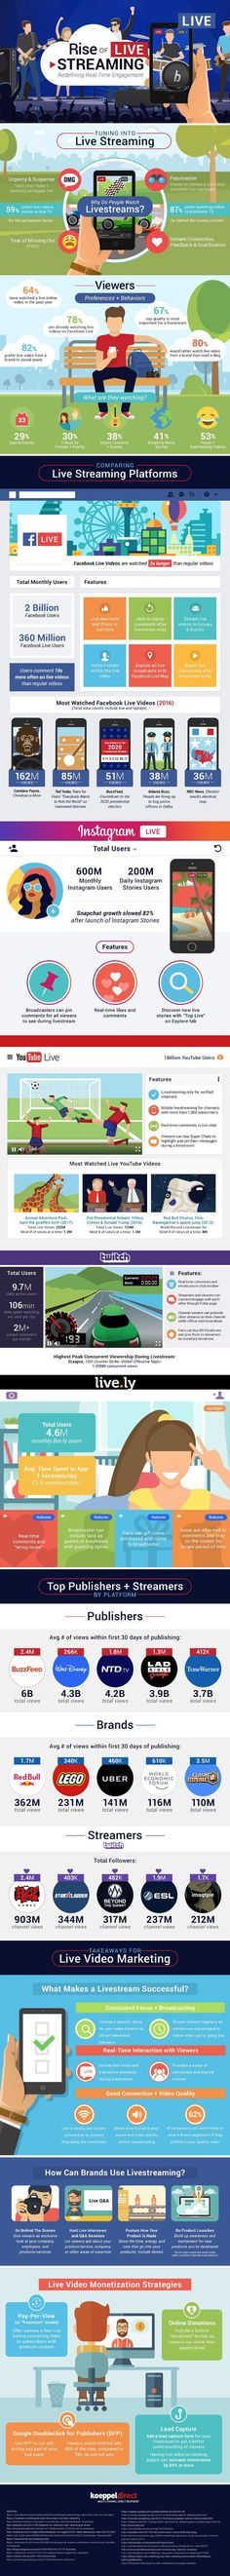 Video Livestreaming: Why People Watch, How Brands Can Use It | Infographic